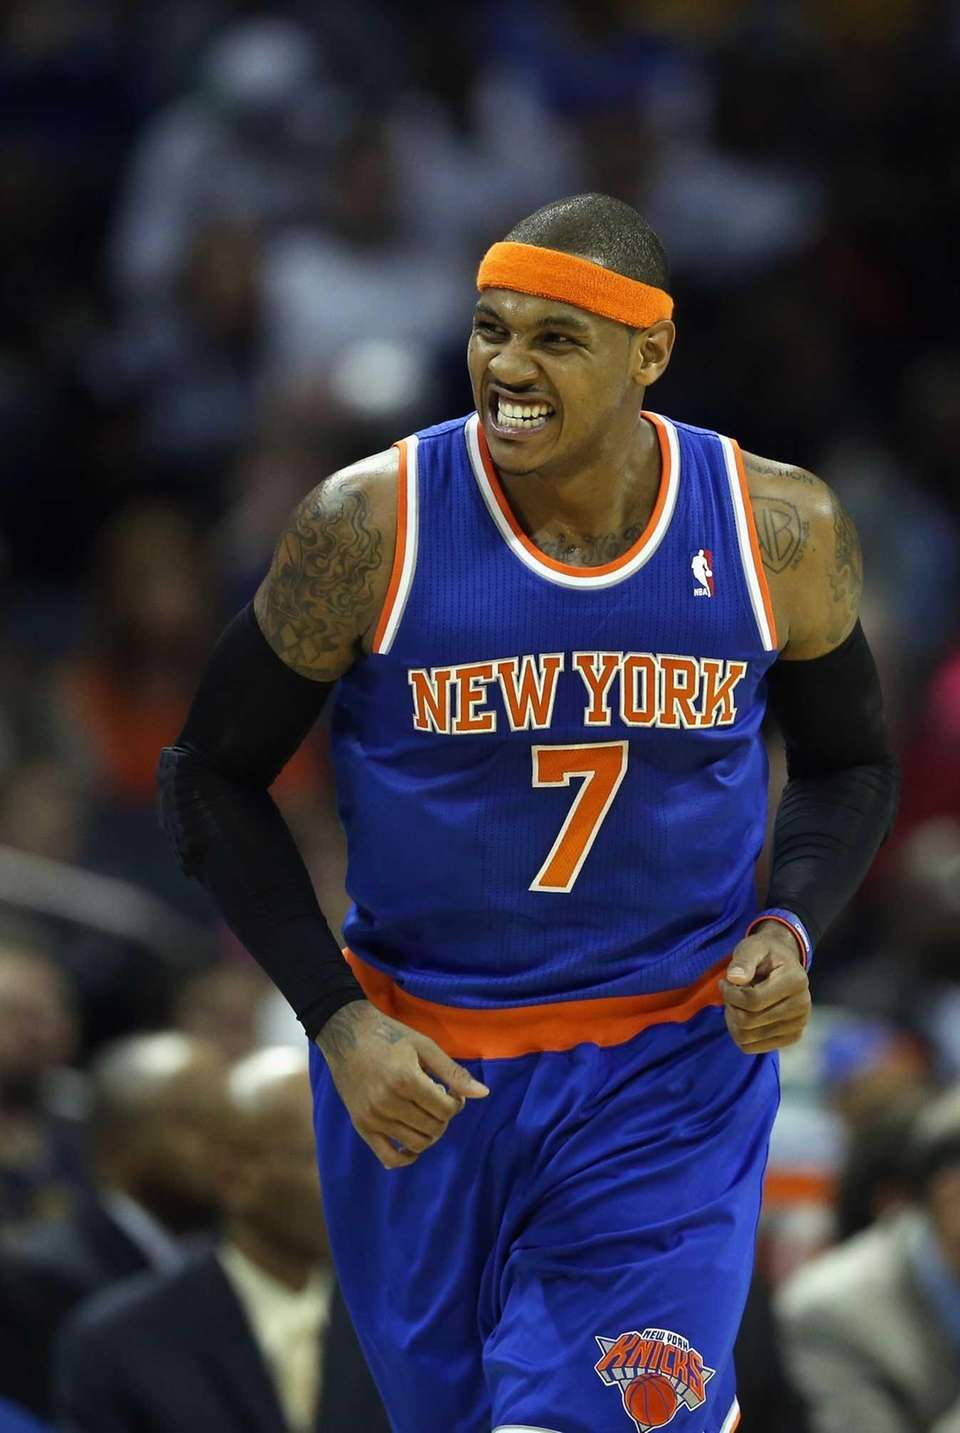 Carmelo Anthony reacts after making a basket during